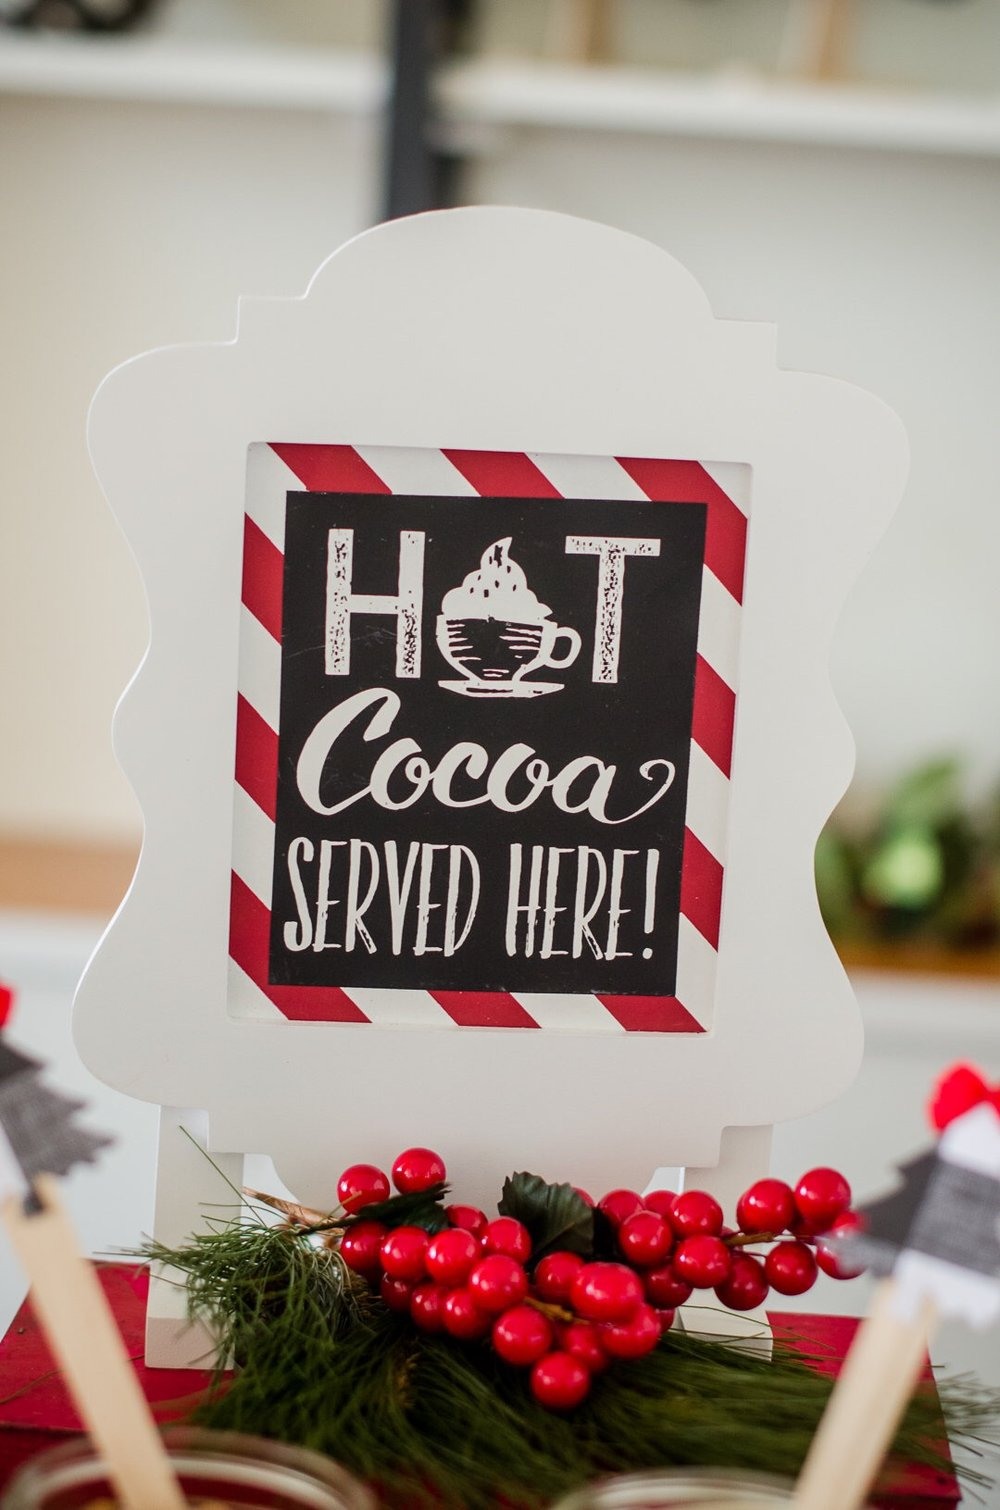 This cute hot cocoa sign is the perfect addition to any holiday party. See more holiday party inspiration from Austin based party stylist Mint Event Design at www.minteventdesign.com #holidayparty #holidays #partyideas #christmasparty #holidaypartyideas #hotcocoabar #hotcocoa